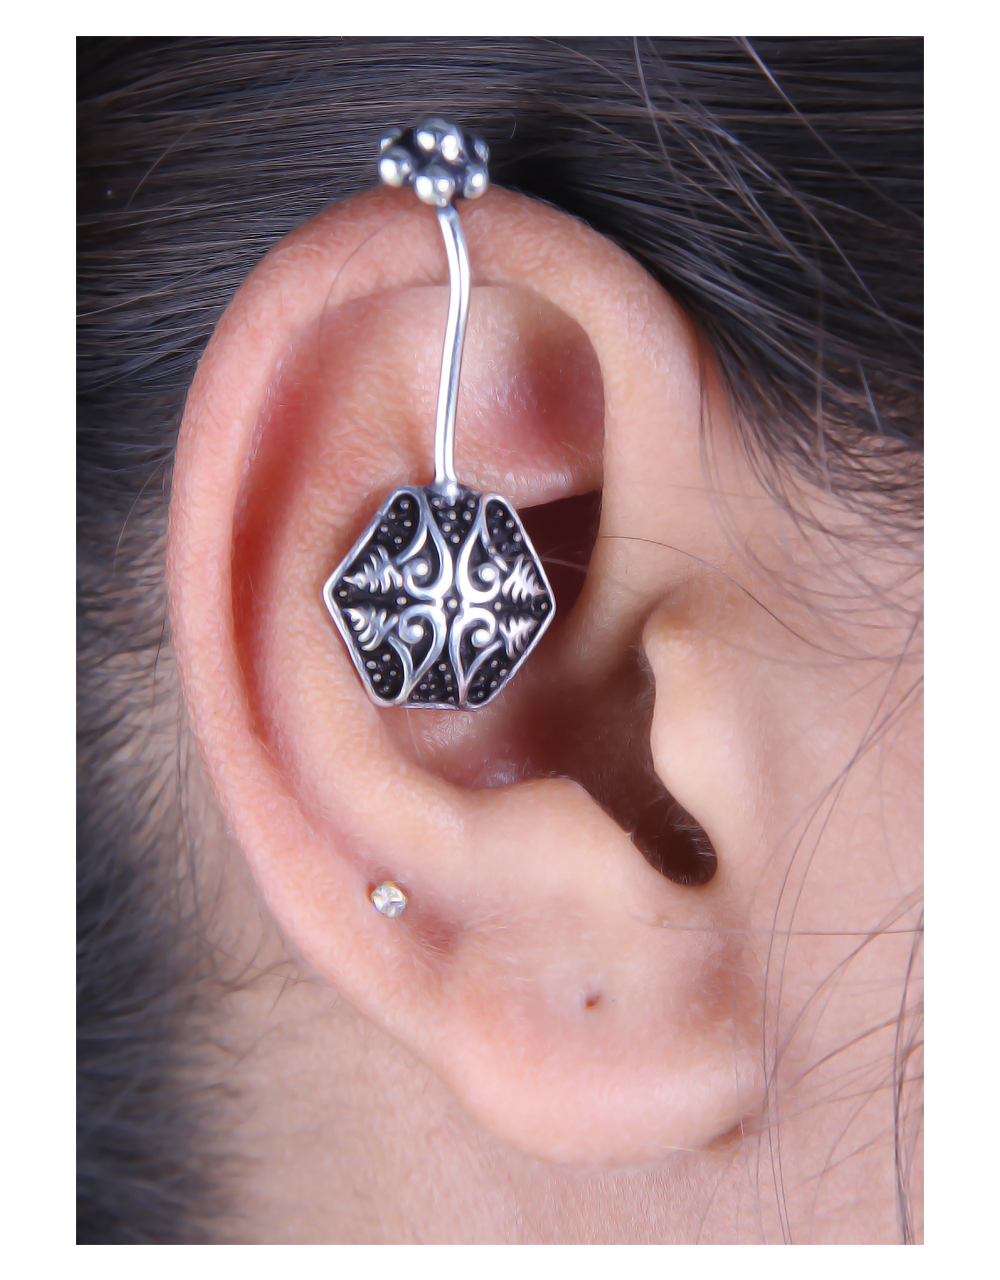 Oxidised Cuff Earrings Featuring Intricate Carving Designs